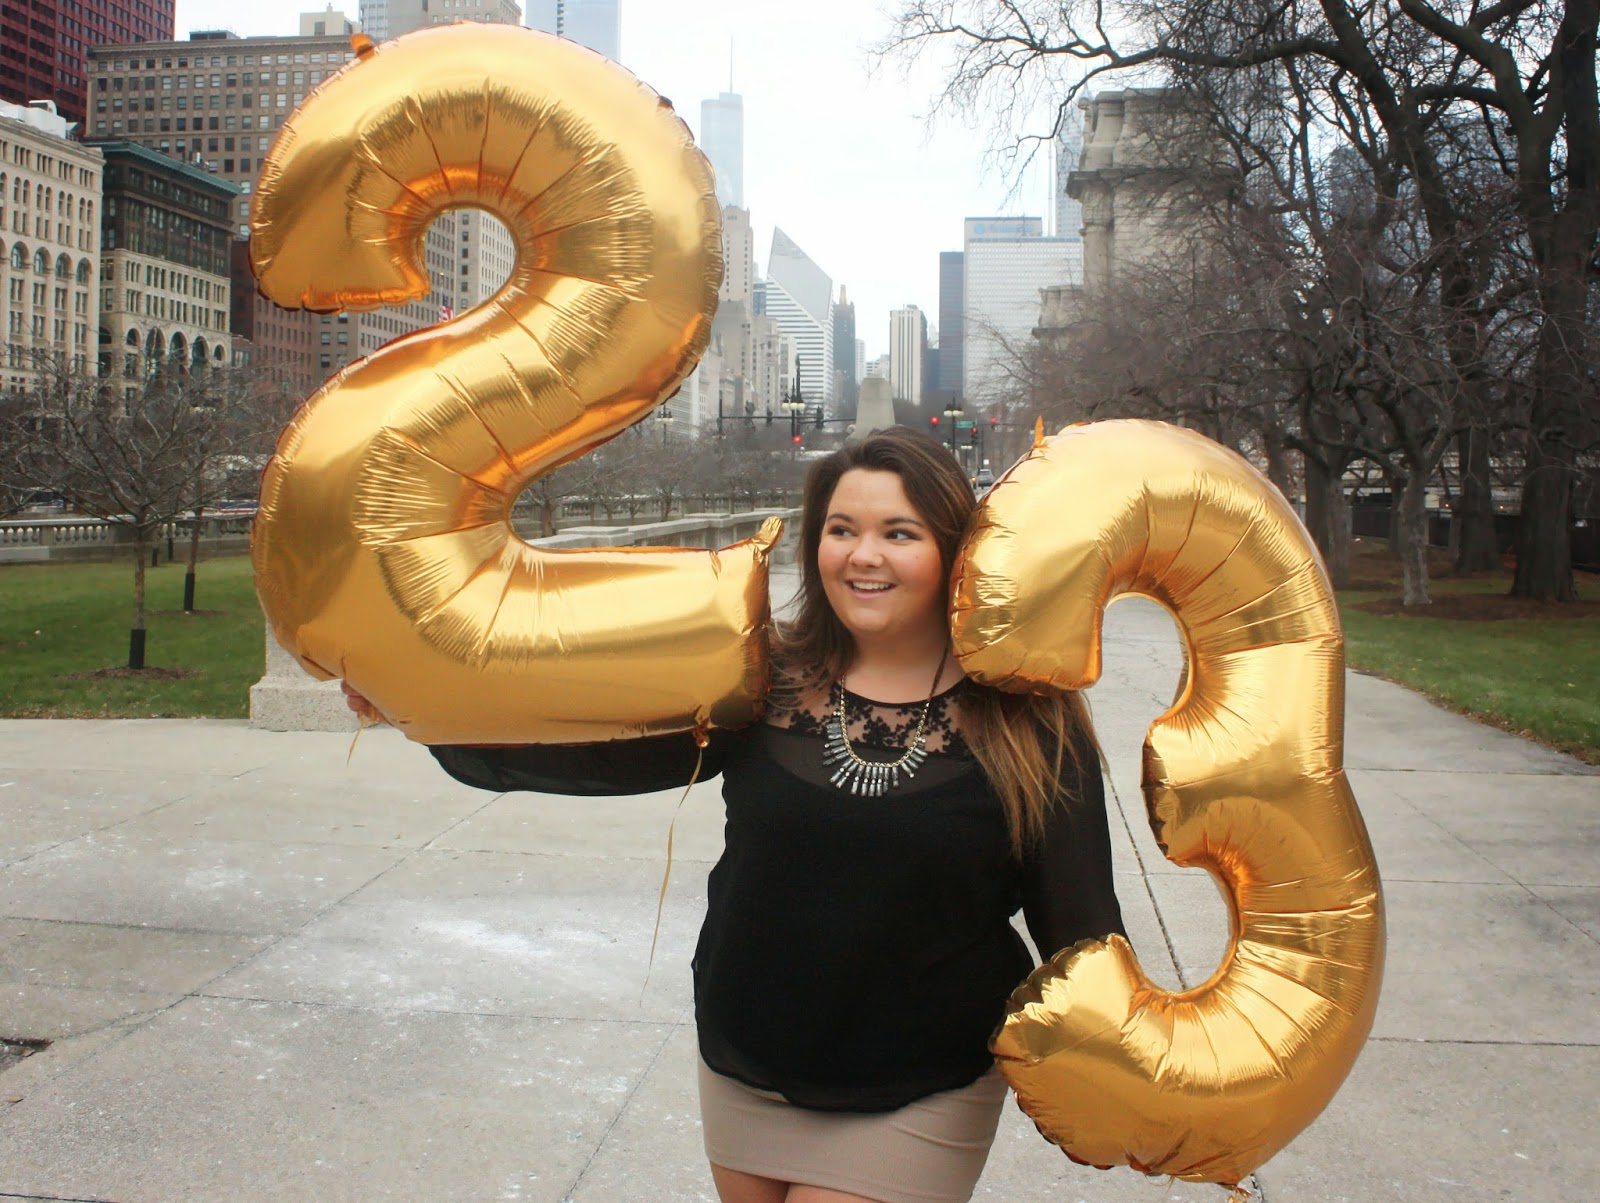 fatshion, fashion blogger, fat girl fashion, happy birthday, gold number balloons,  feeling 22, 23rd birthday, natalie craig, natalie in the city, betsey Johnson coat, skirt, thick girls, plus size fashion blogger, inspirational, college graduate, columbia college chicago, USA today, steve harvey show, embrace your curves